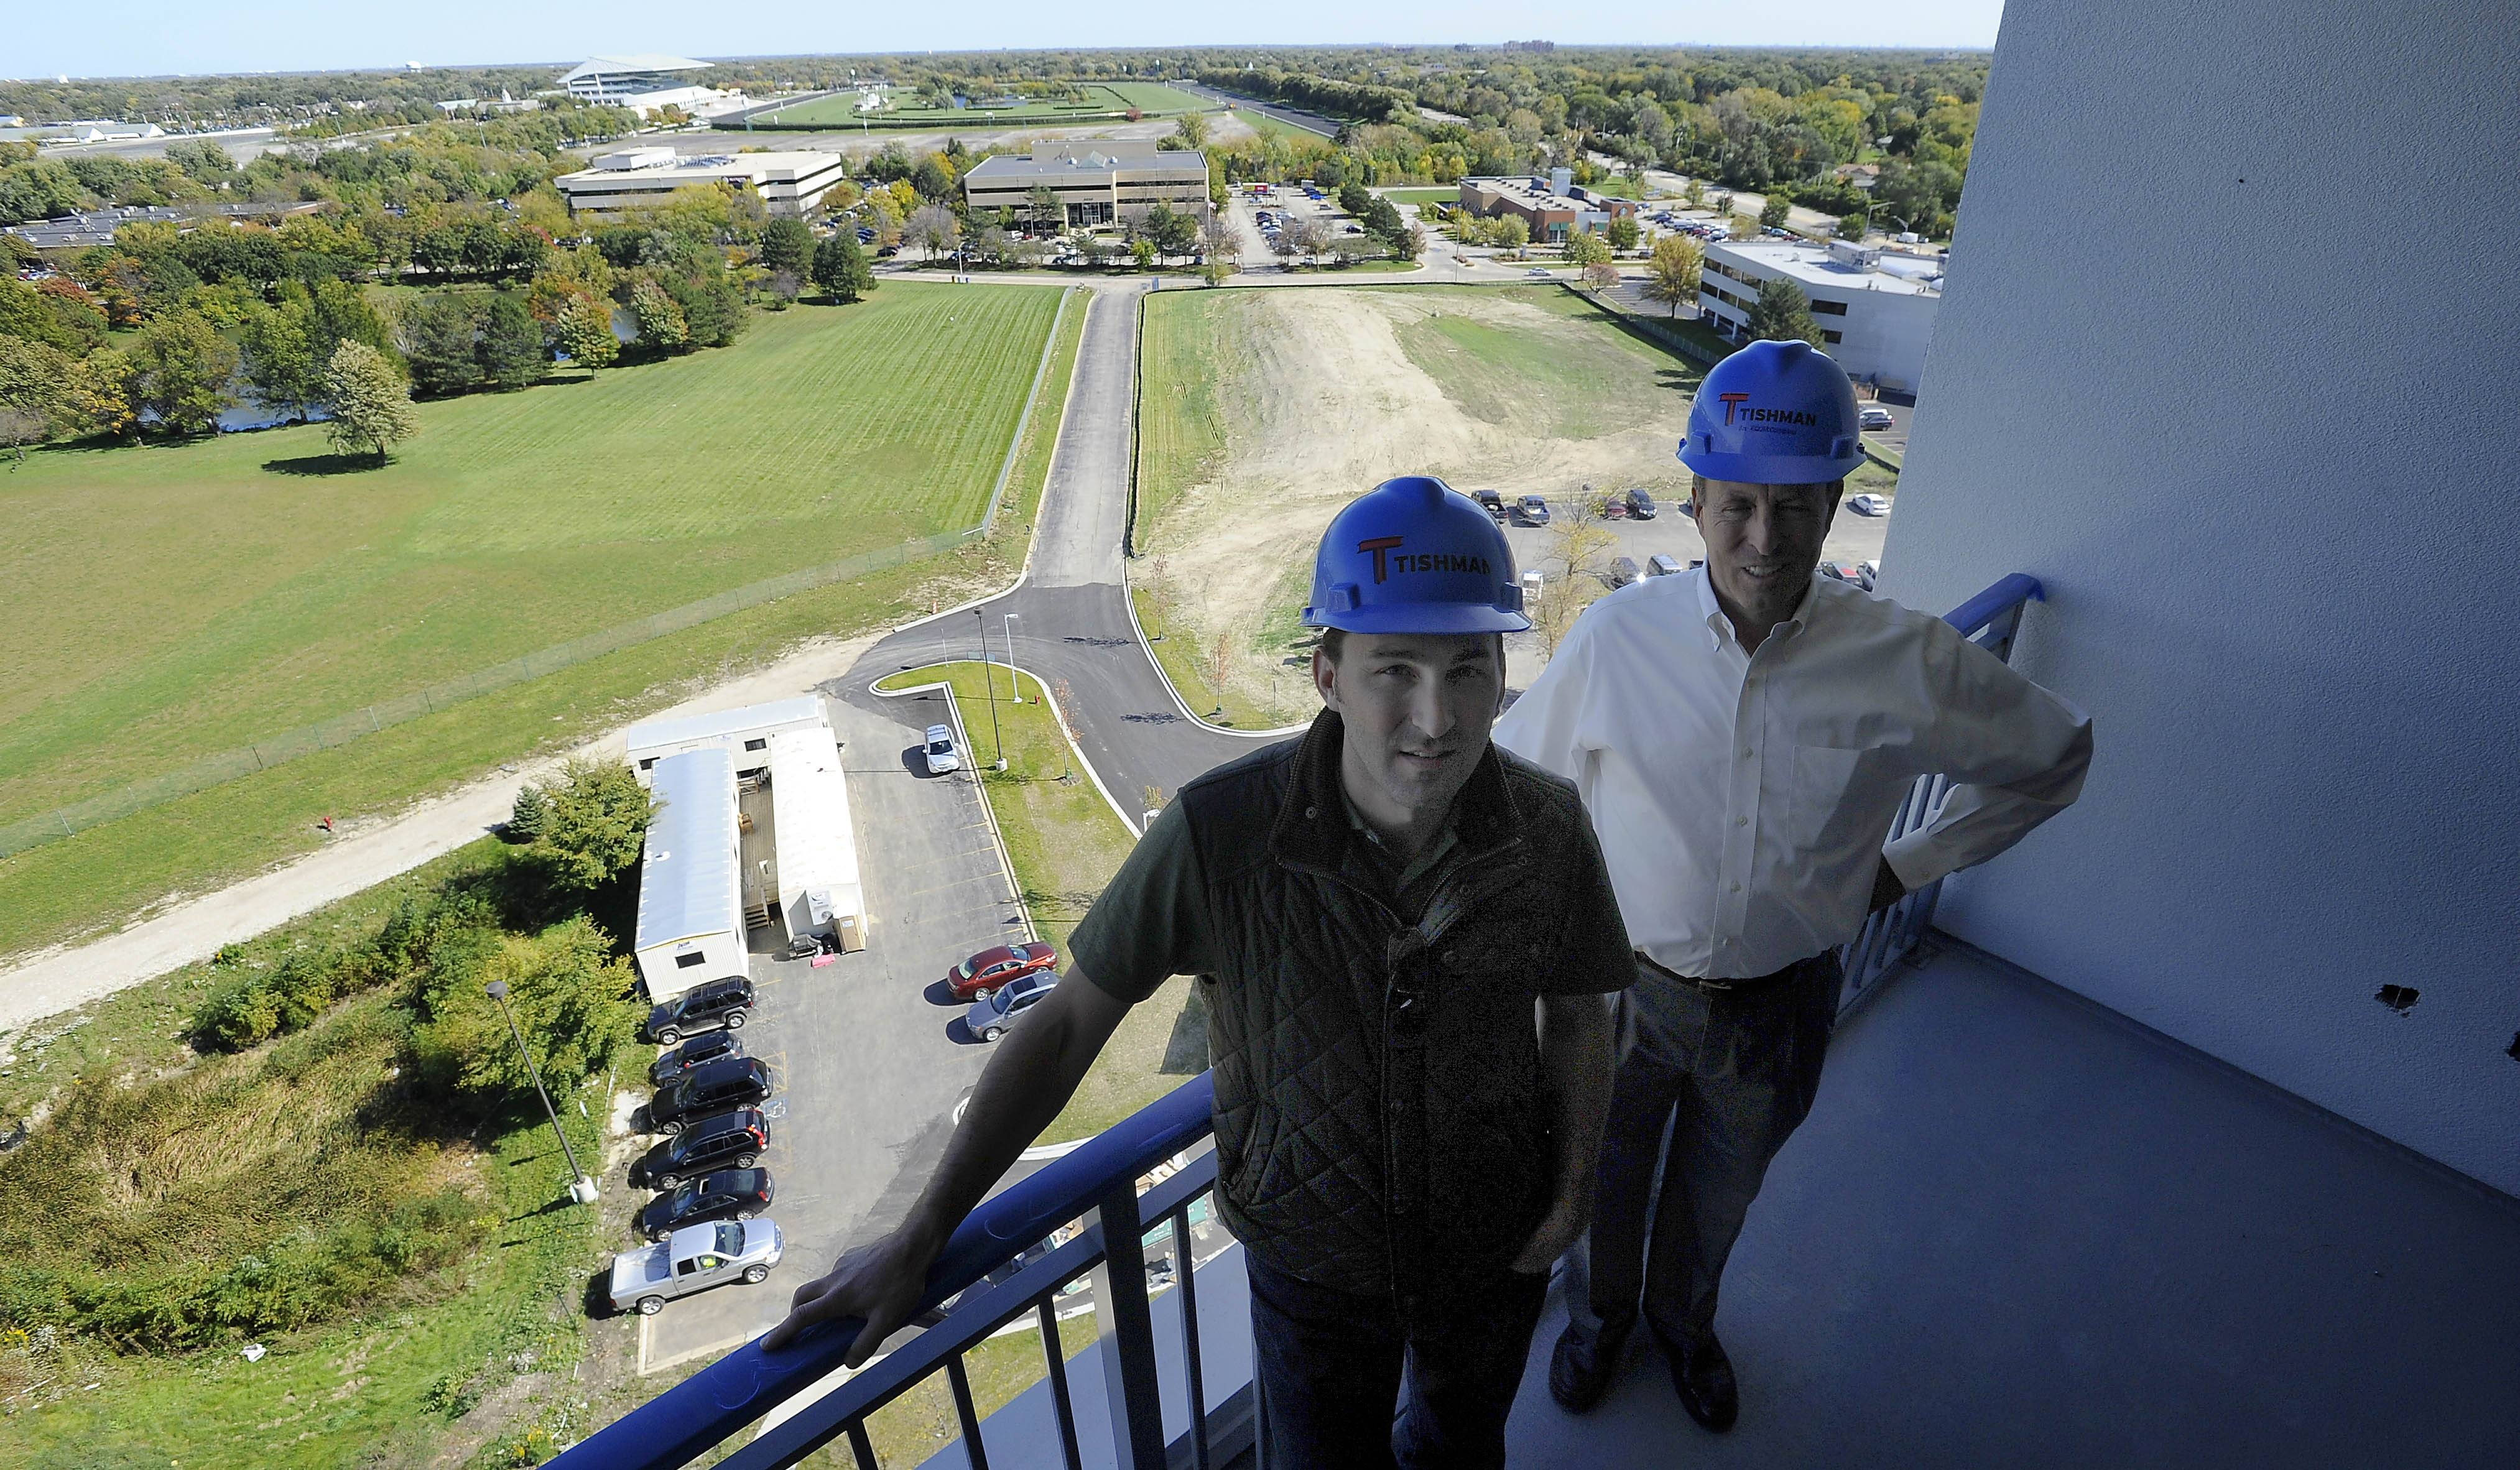 Residents start moving into One Arlington on Arlington Downs site